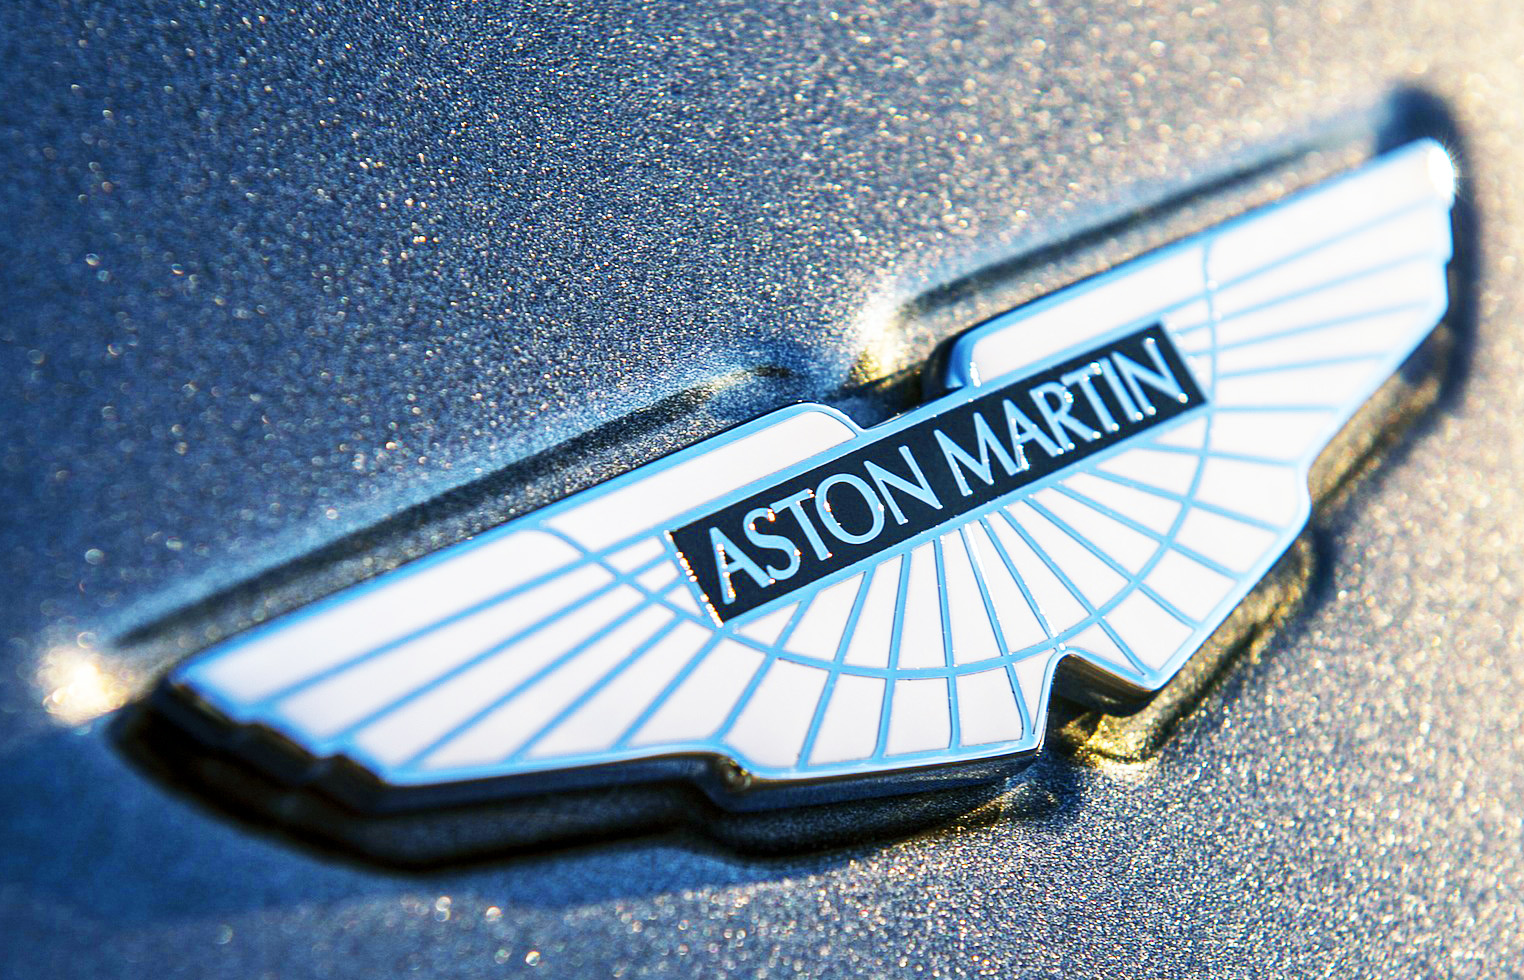 Aston Martin Logo Aston Martin Car Symbol Meaning And History Car Brands Car Logos Meaning And Symbol